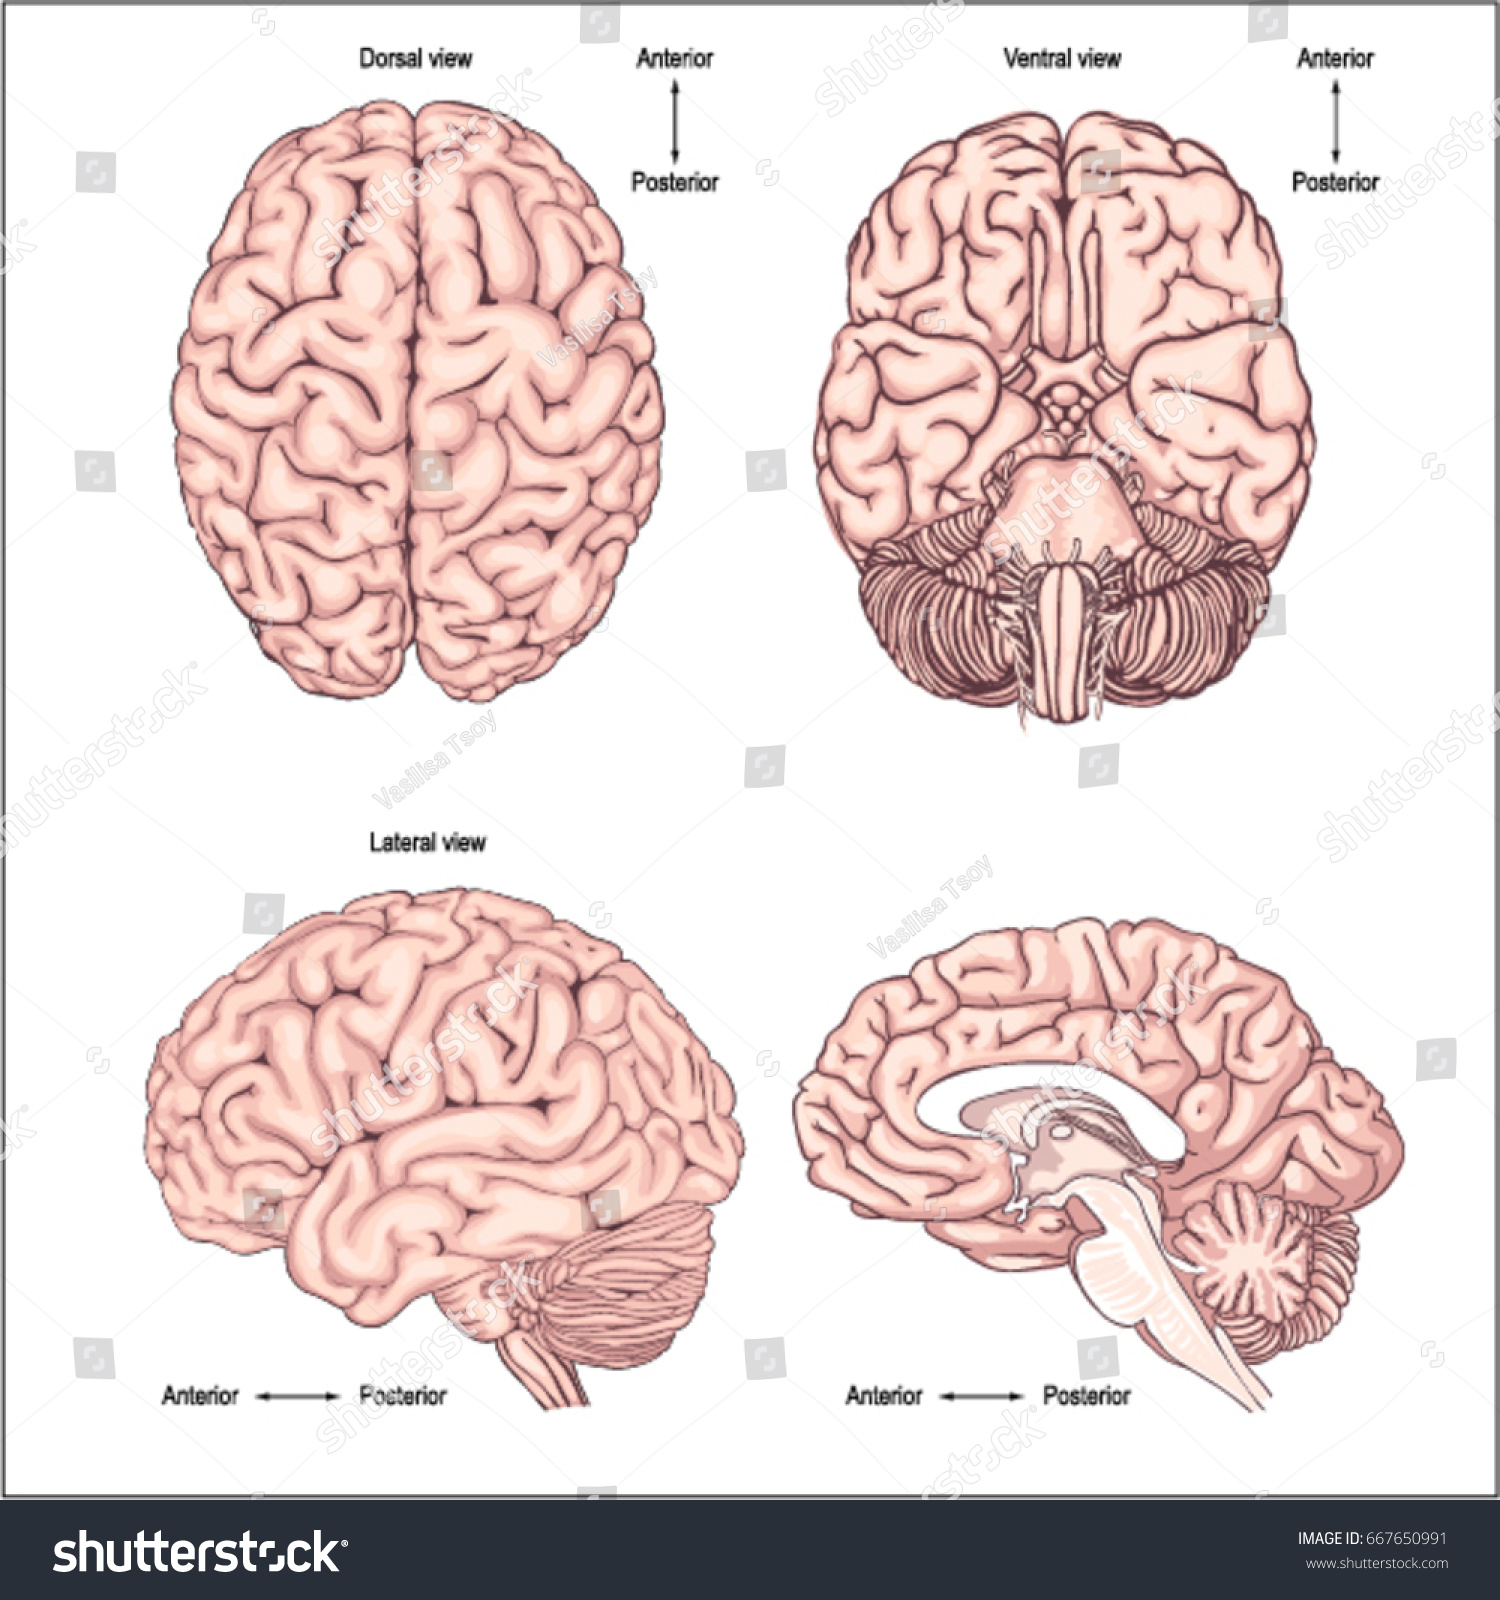 Diagram brain top side front back stock vector royalty free diagram of the brain from the top side front and back realistic image of the ccuart Gallery